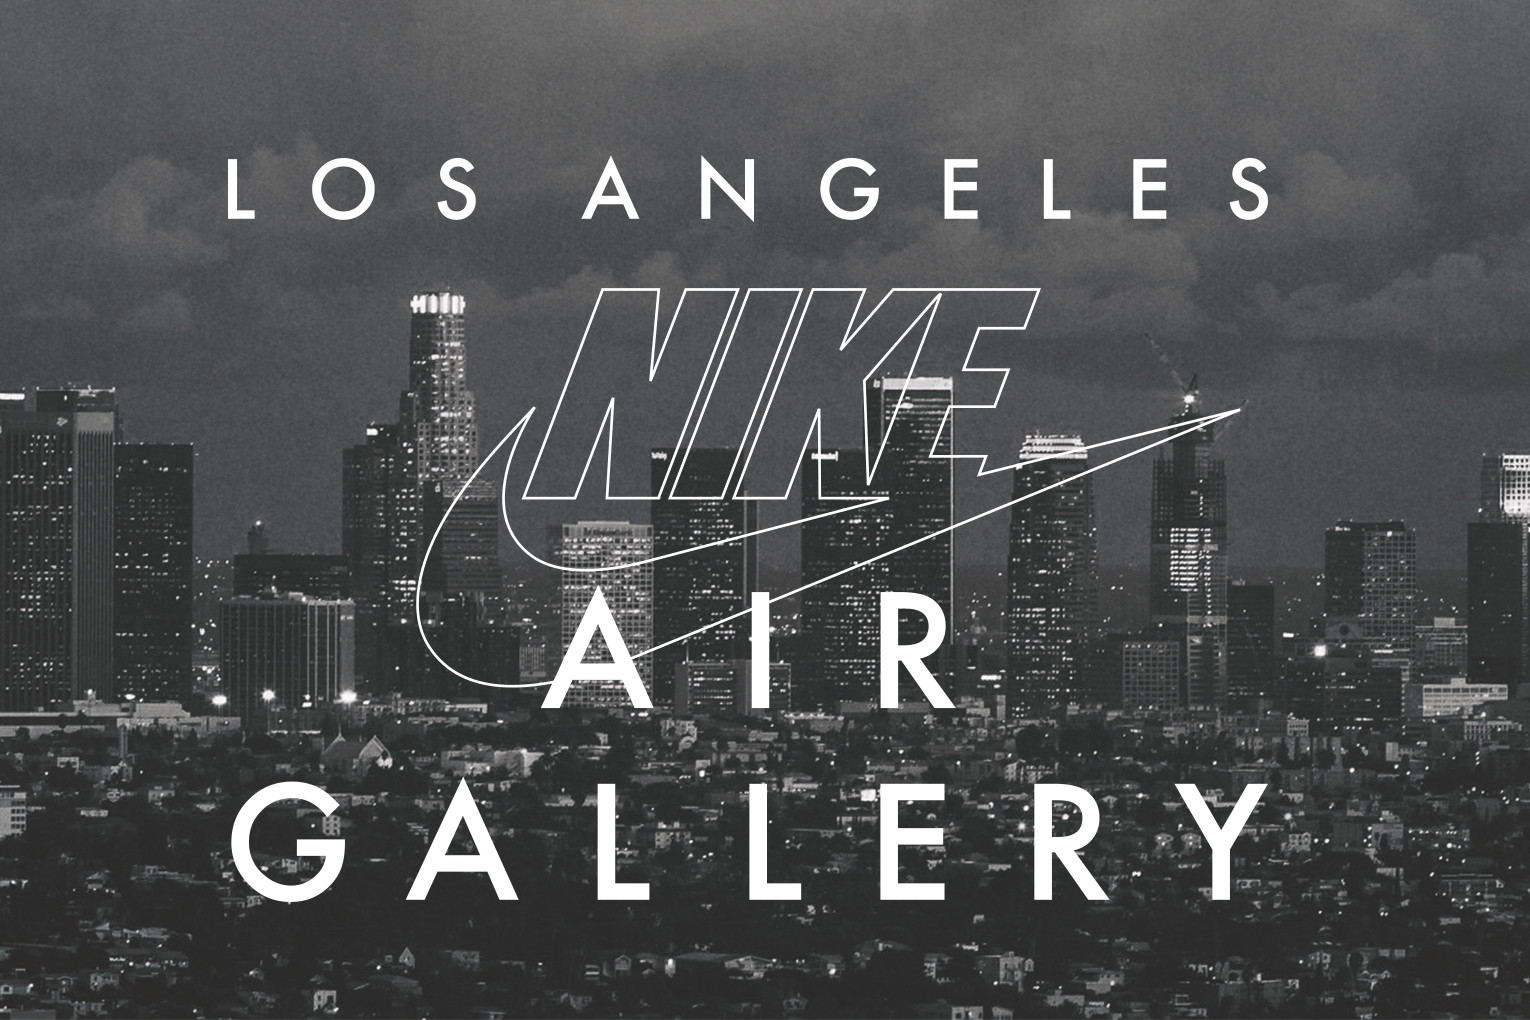 Nike Air Moves Galleries art air max day 2018 artists street graffiti chicago los angeles la new york nyc